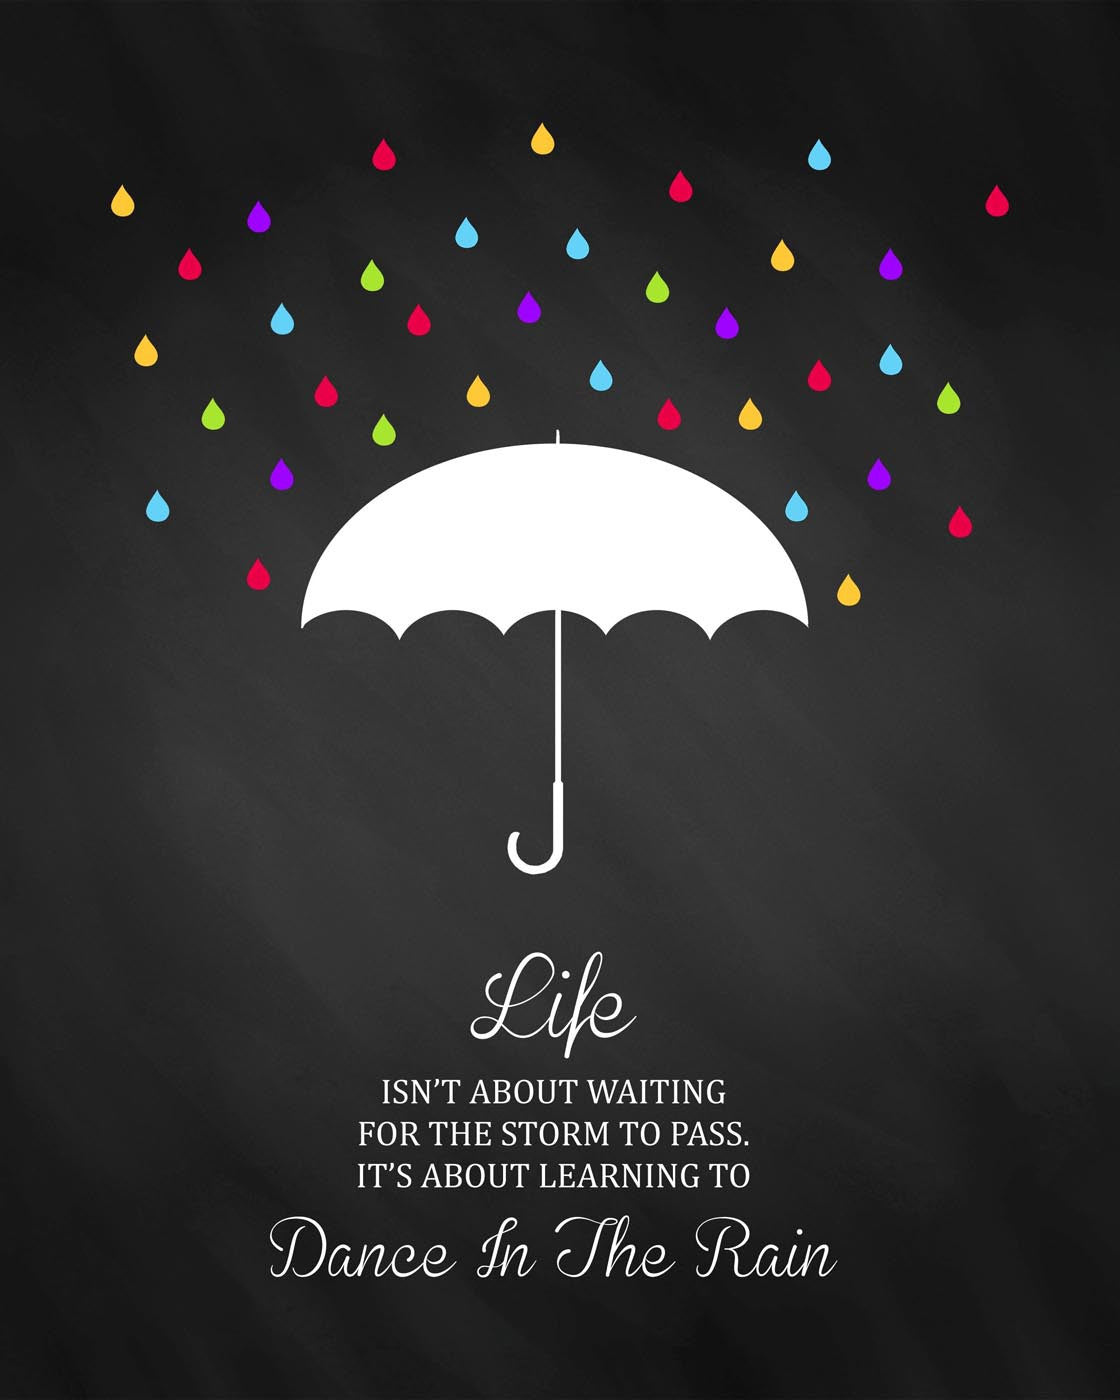 motivational poster dance in the rain inspirational quote